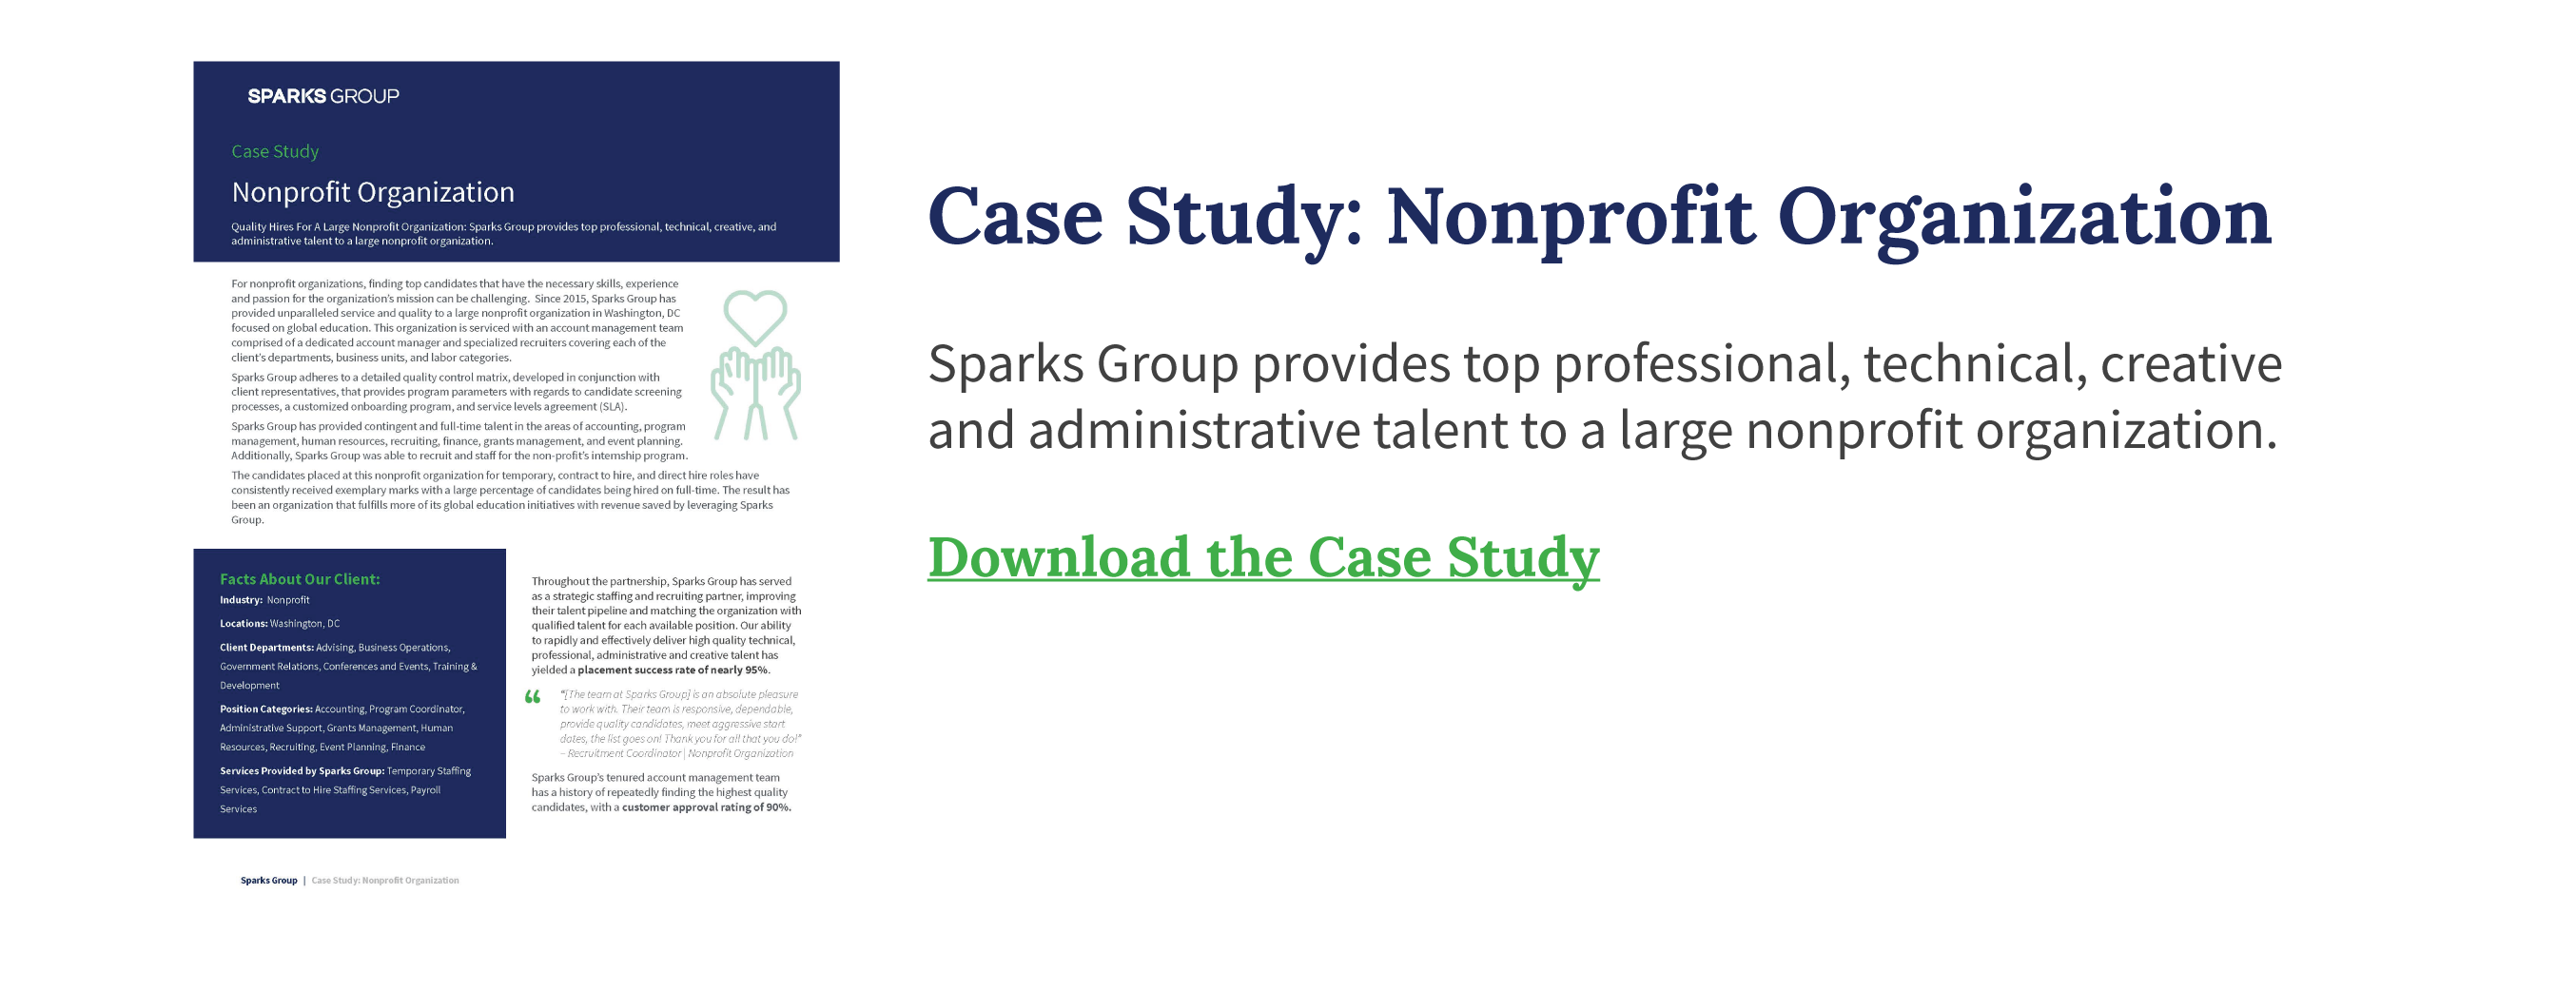 Case study: nonprofit organization